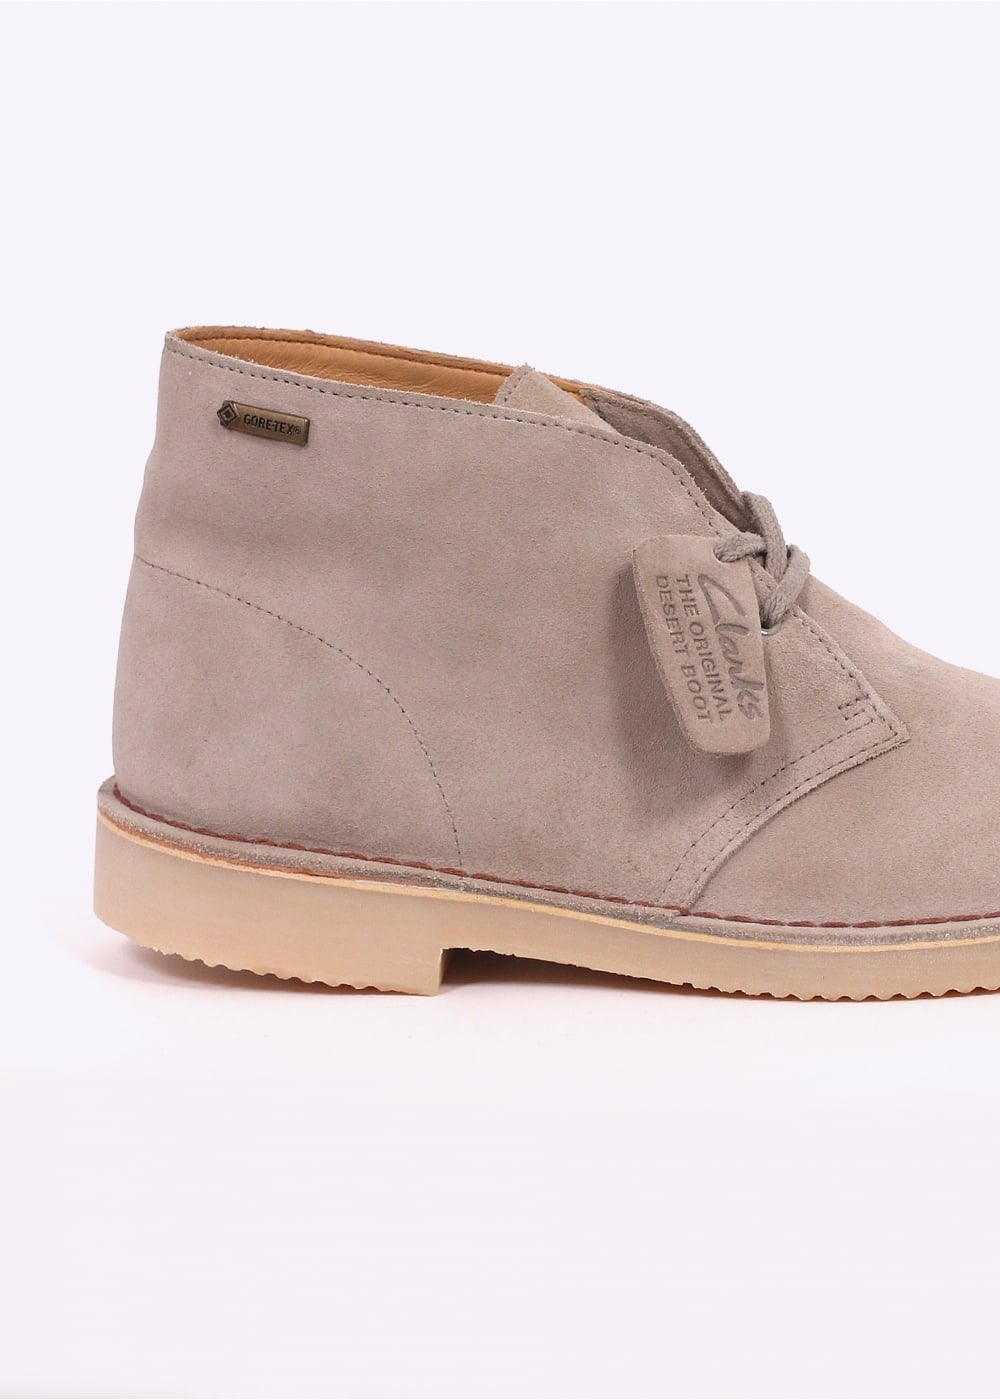 clarks originals desert boot suede gtx sand clarks originals from triads uk. Black Bedroom Furniture Sets. Home Design Ideas